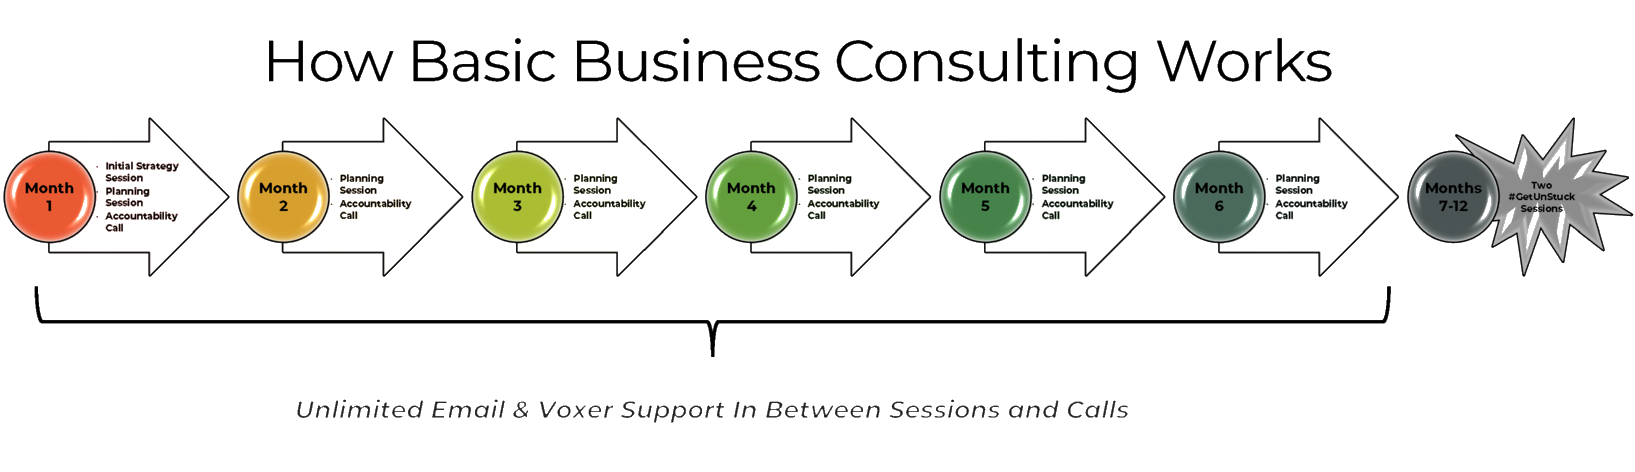 How Basic Business Coaching Works